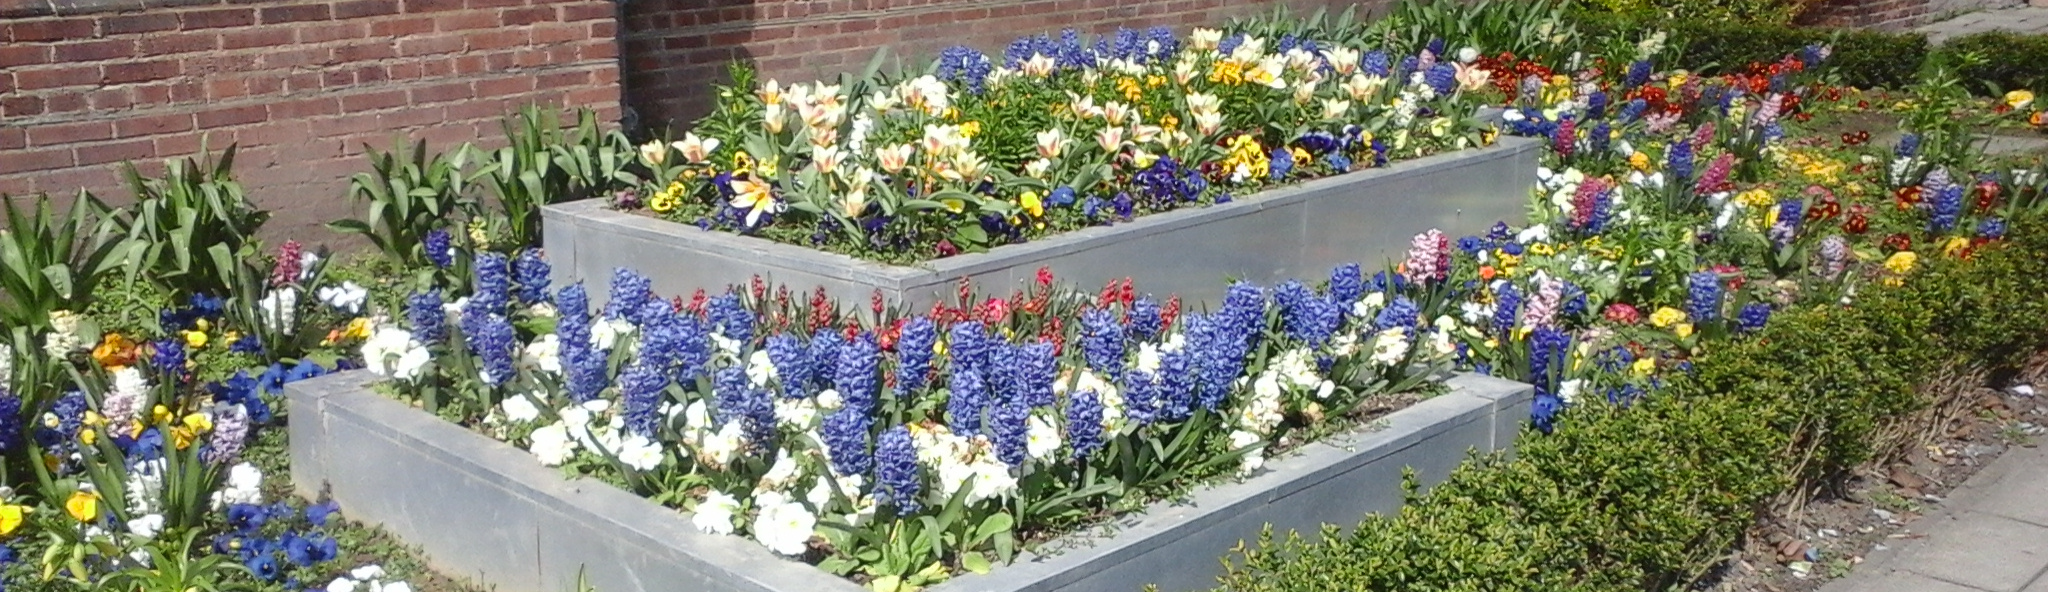 A nice flowerbed at university last year :D